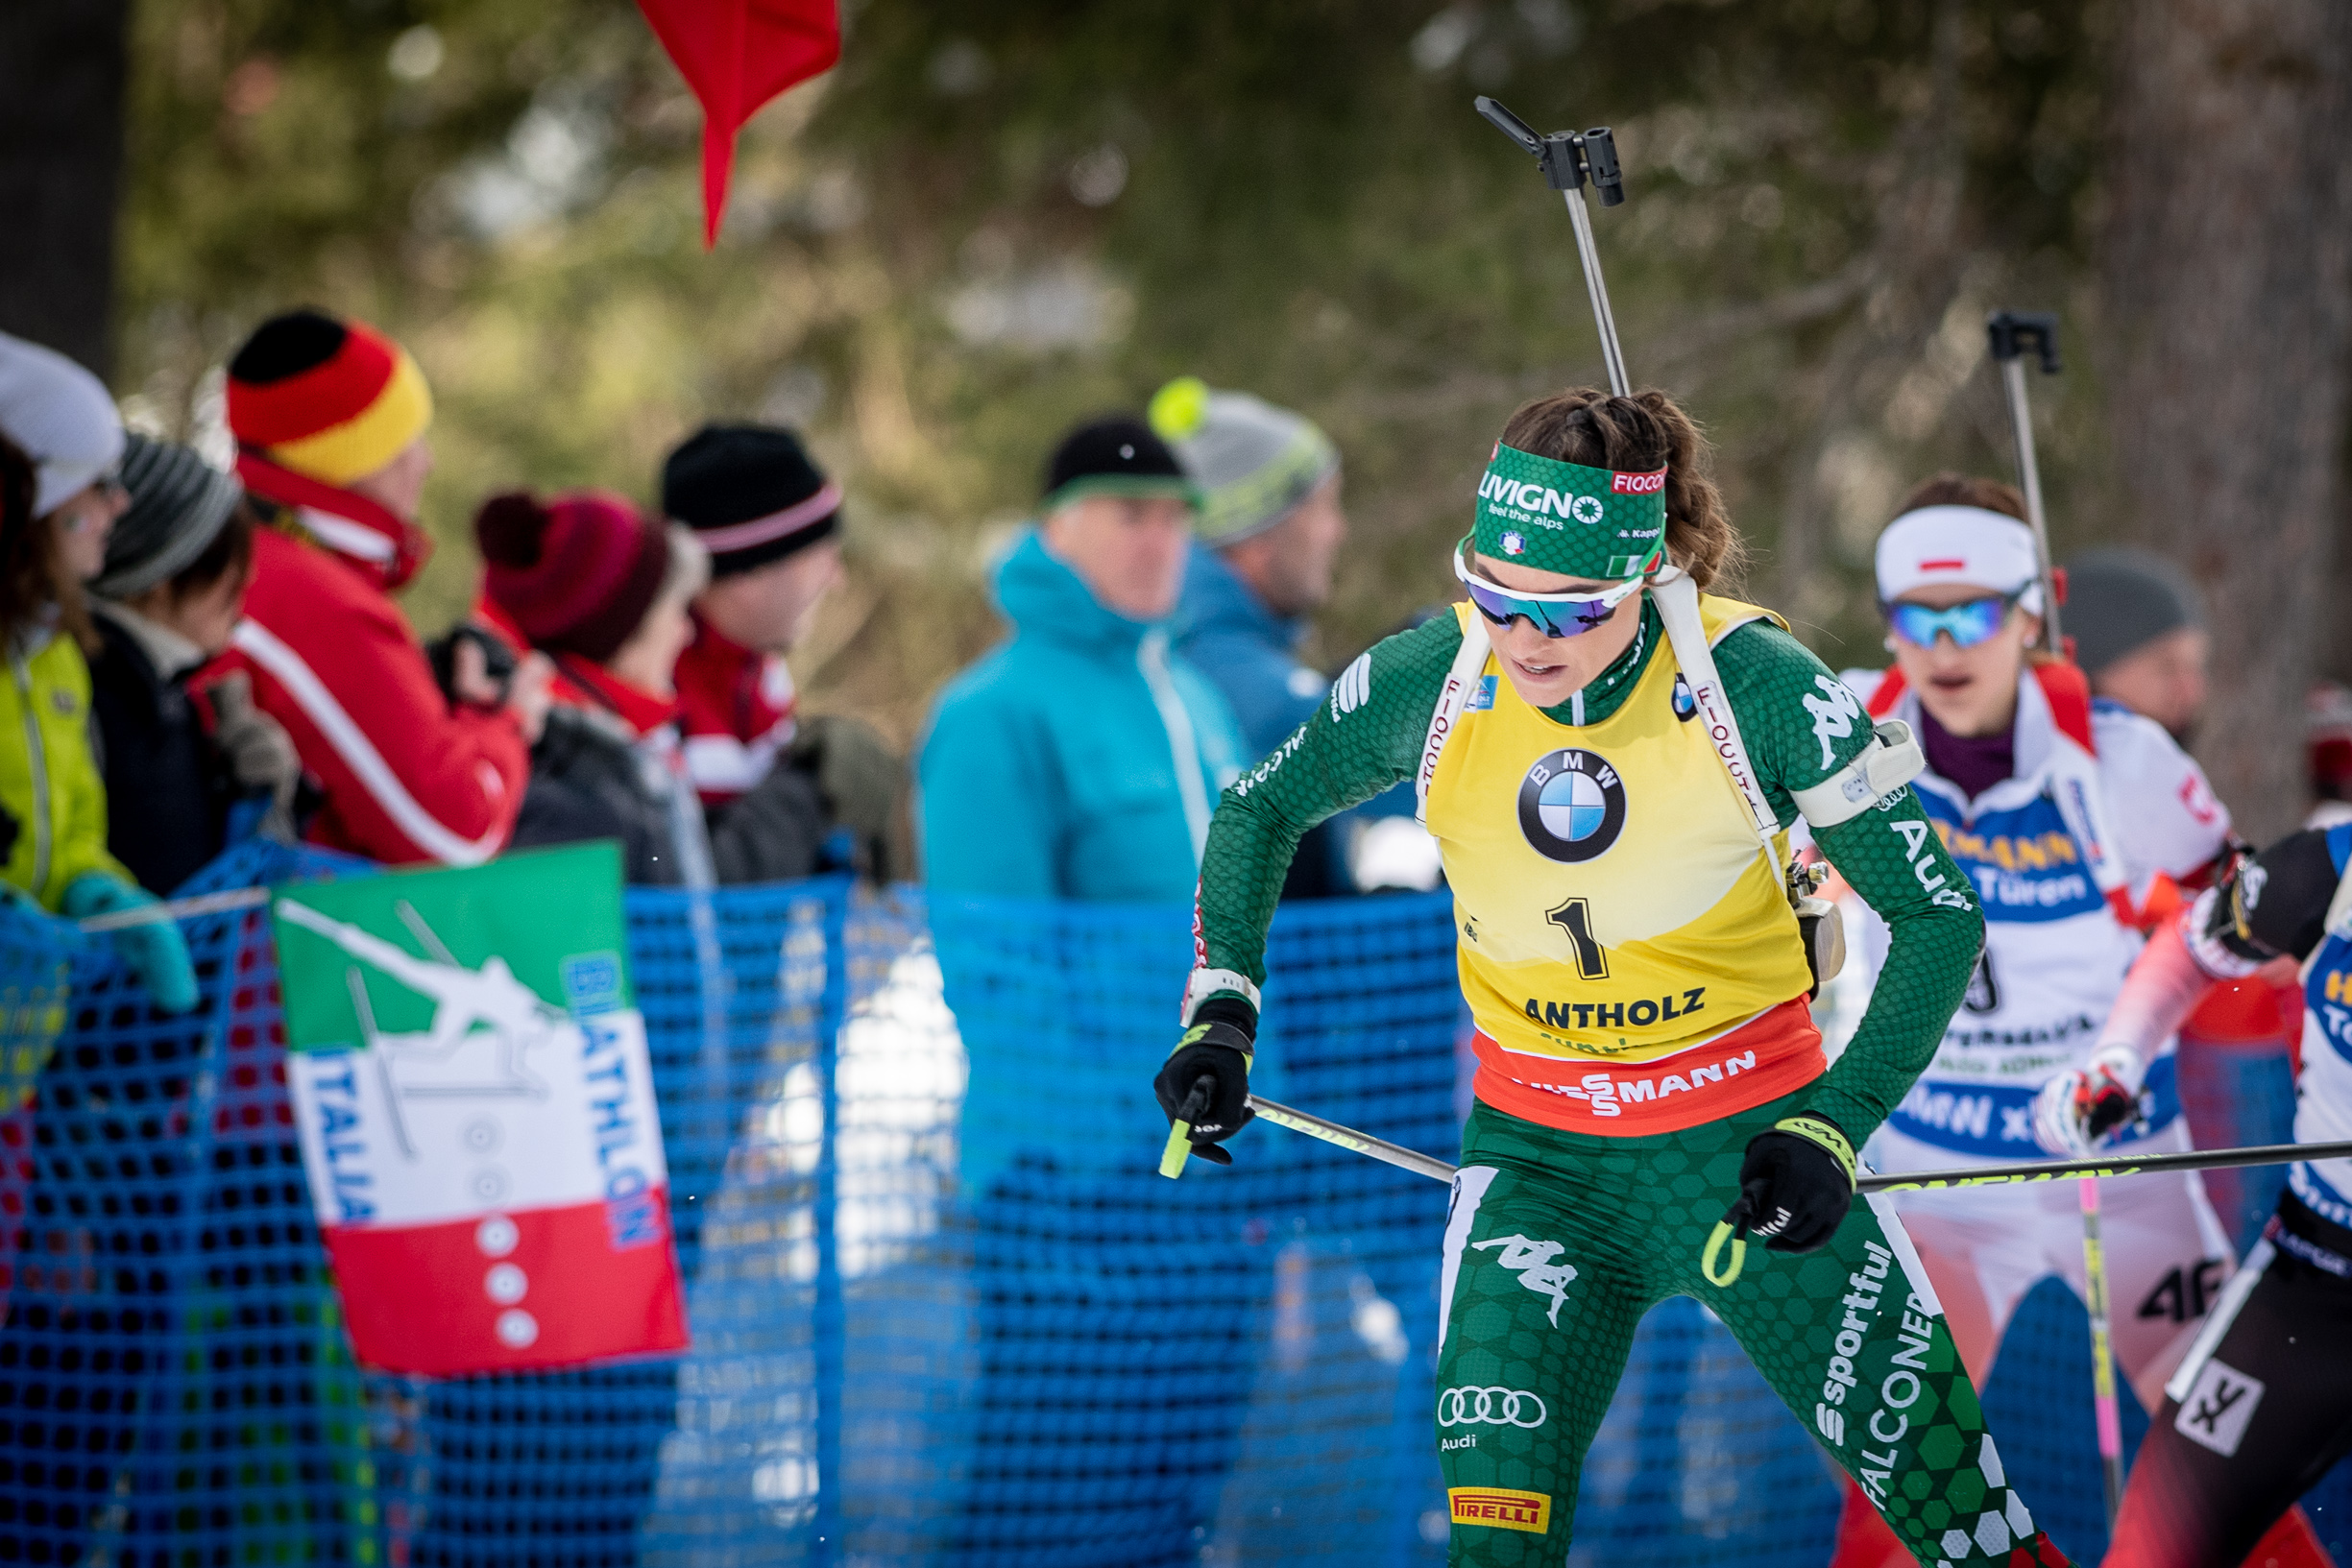 ONE BRONZE MEDAL AND A LOT OF COLD: THE WORLD CUP IS SHORTHANDED IN CANMORE